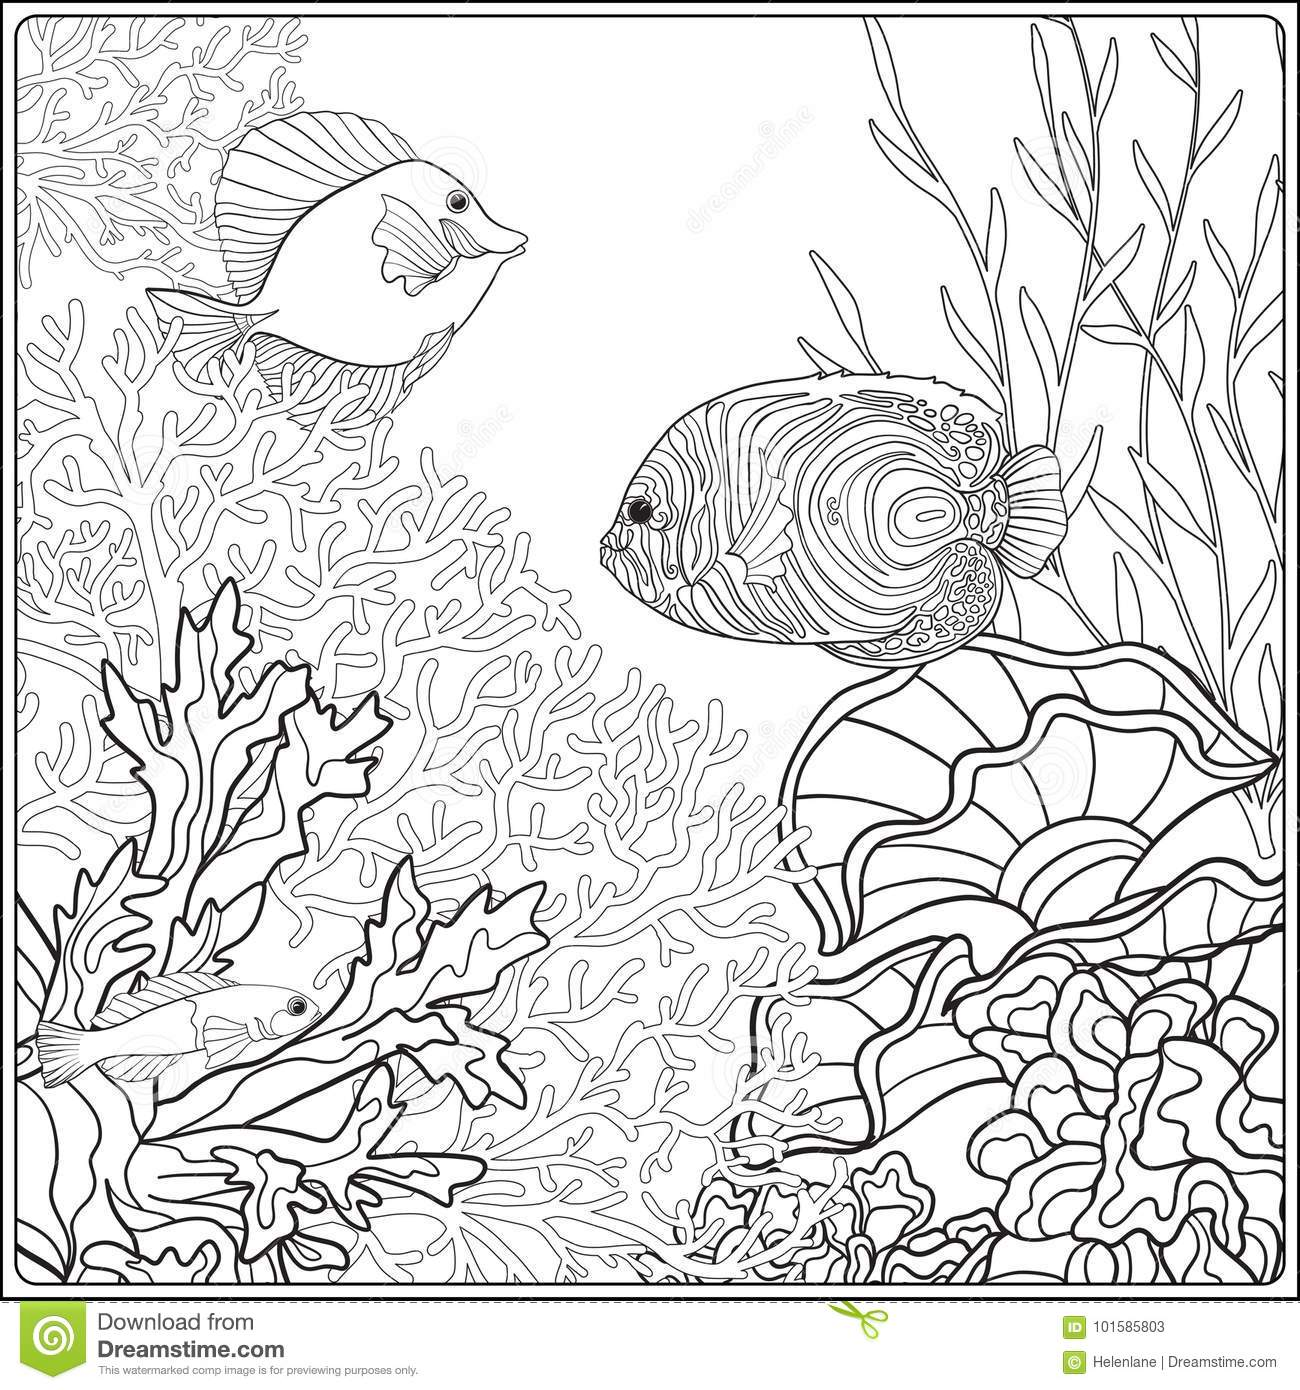 Free Coral Reef Coloring Pages, Download Free Clip Art, Free Clip ... | 1390x1300